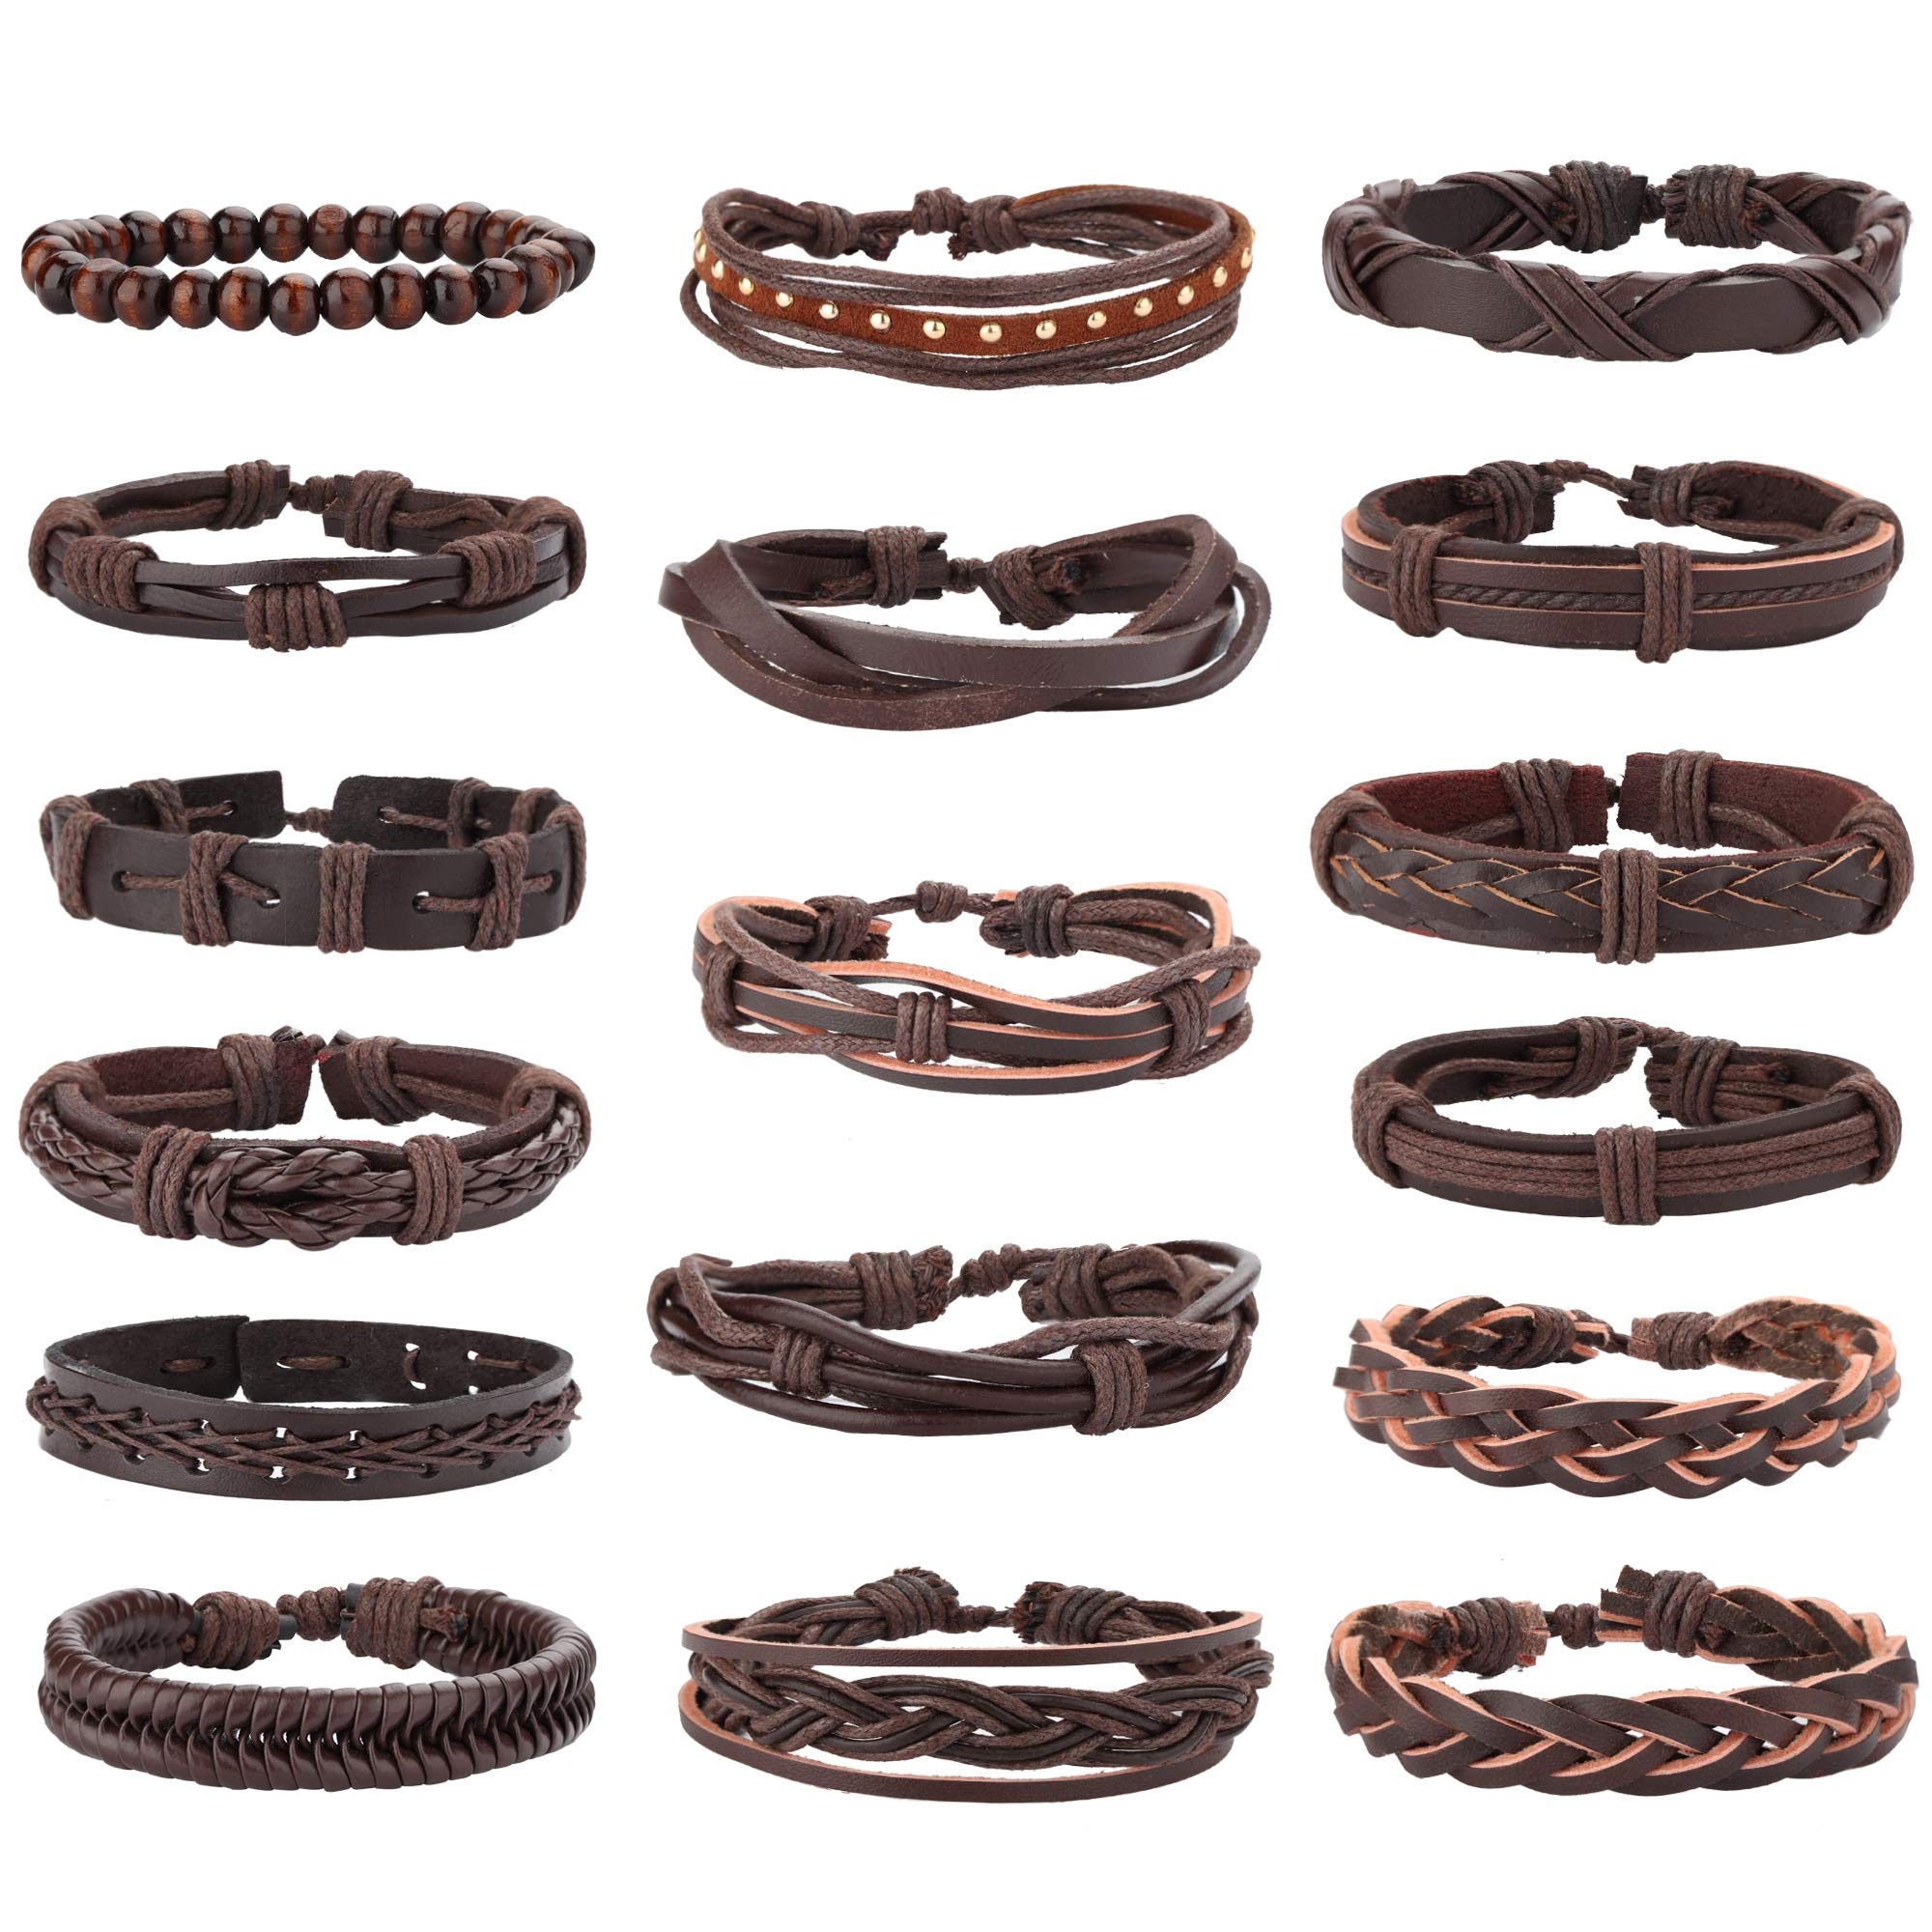 Jstyle 17Pcs Braided Leather Bracelet for Men Women Wooden Beaded Cuff Wrap Bracelet Adjustable Brown